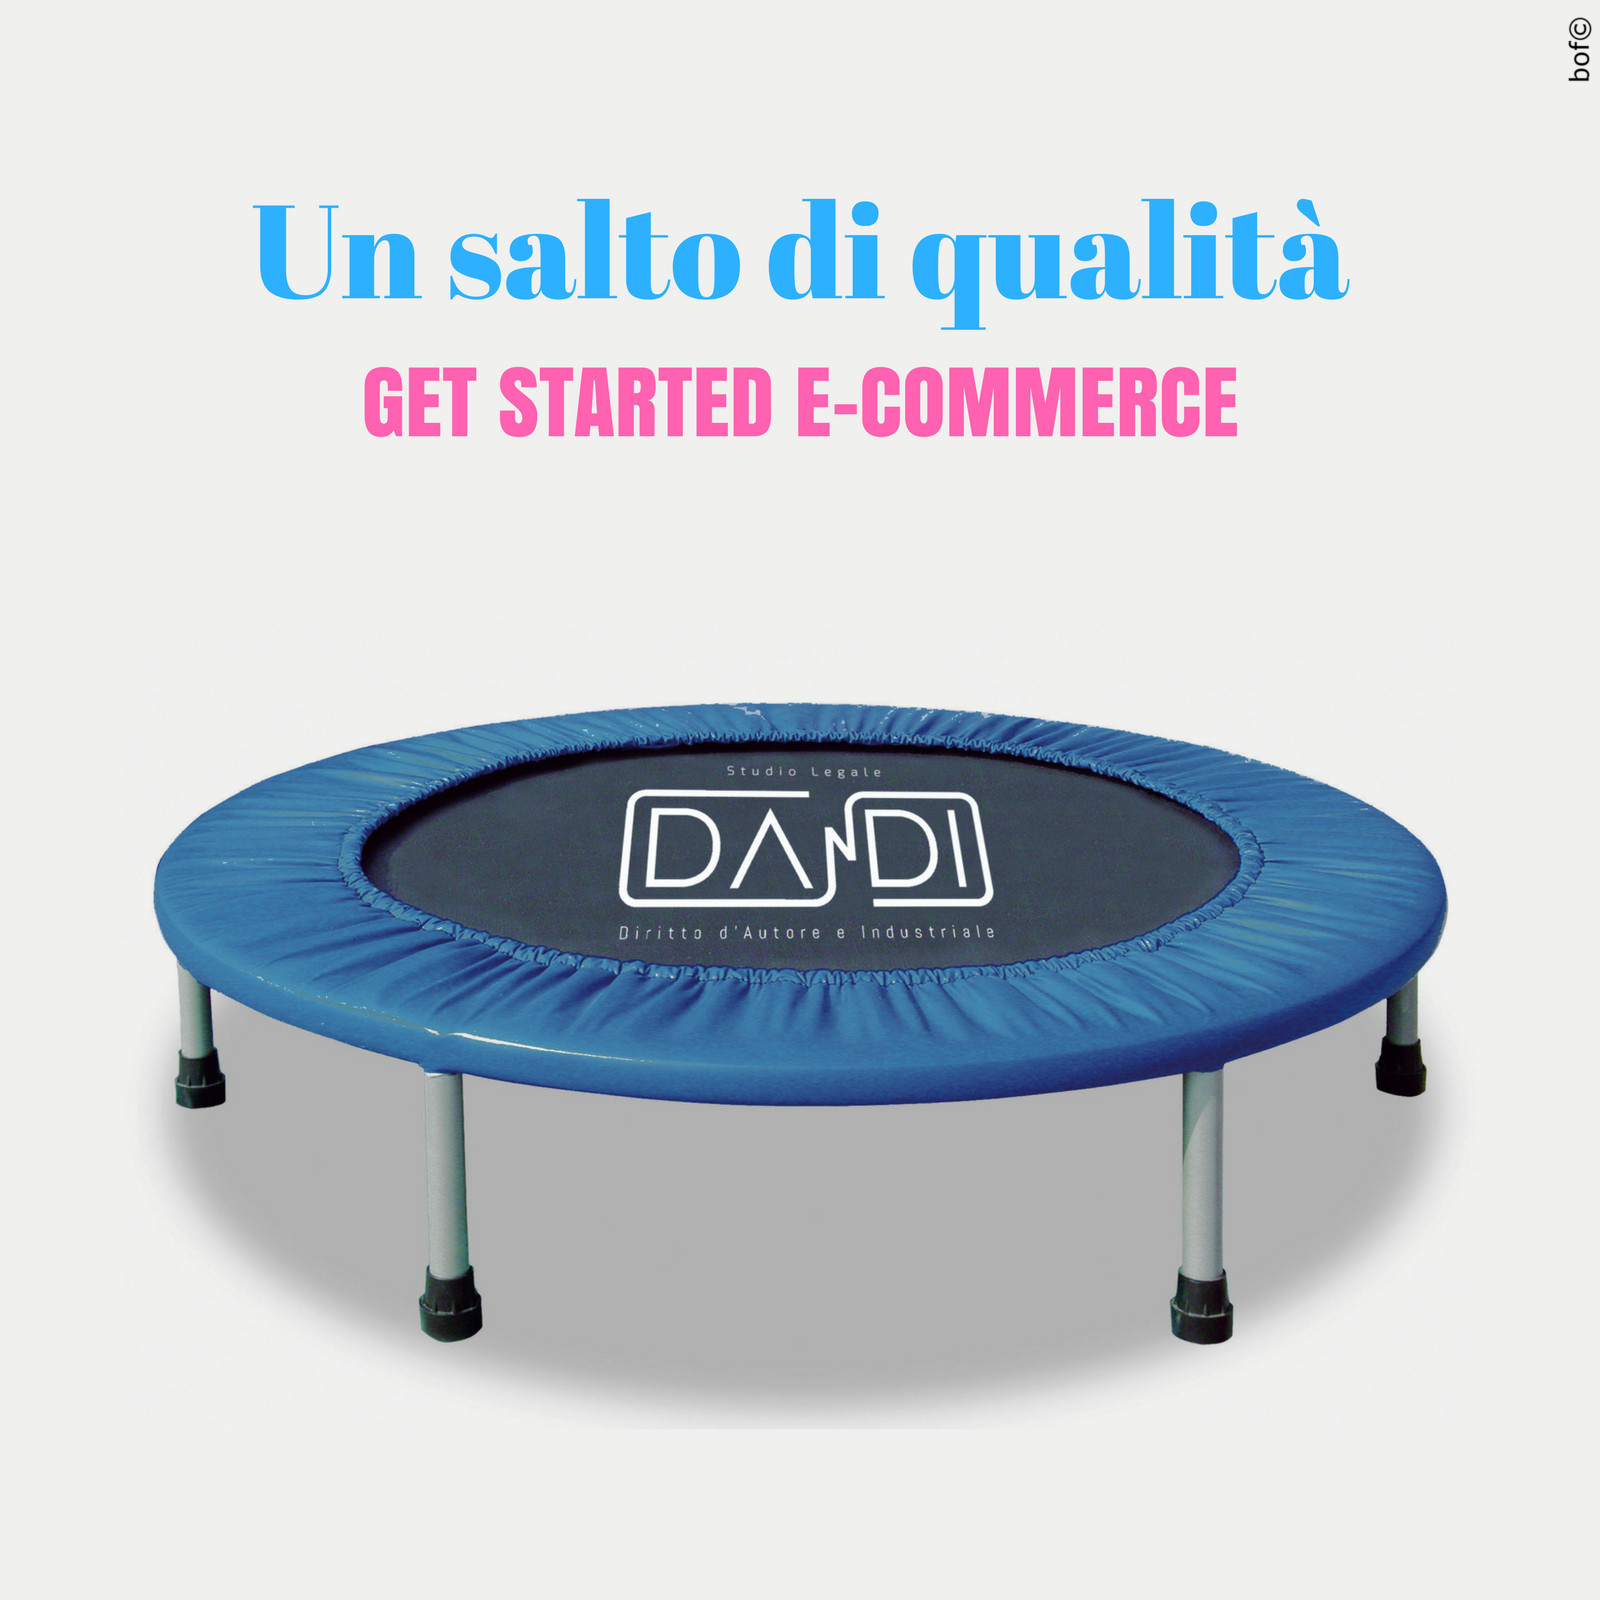 Get Started E-commerce